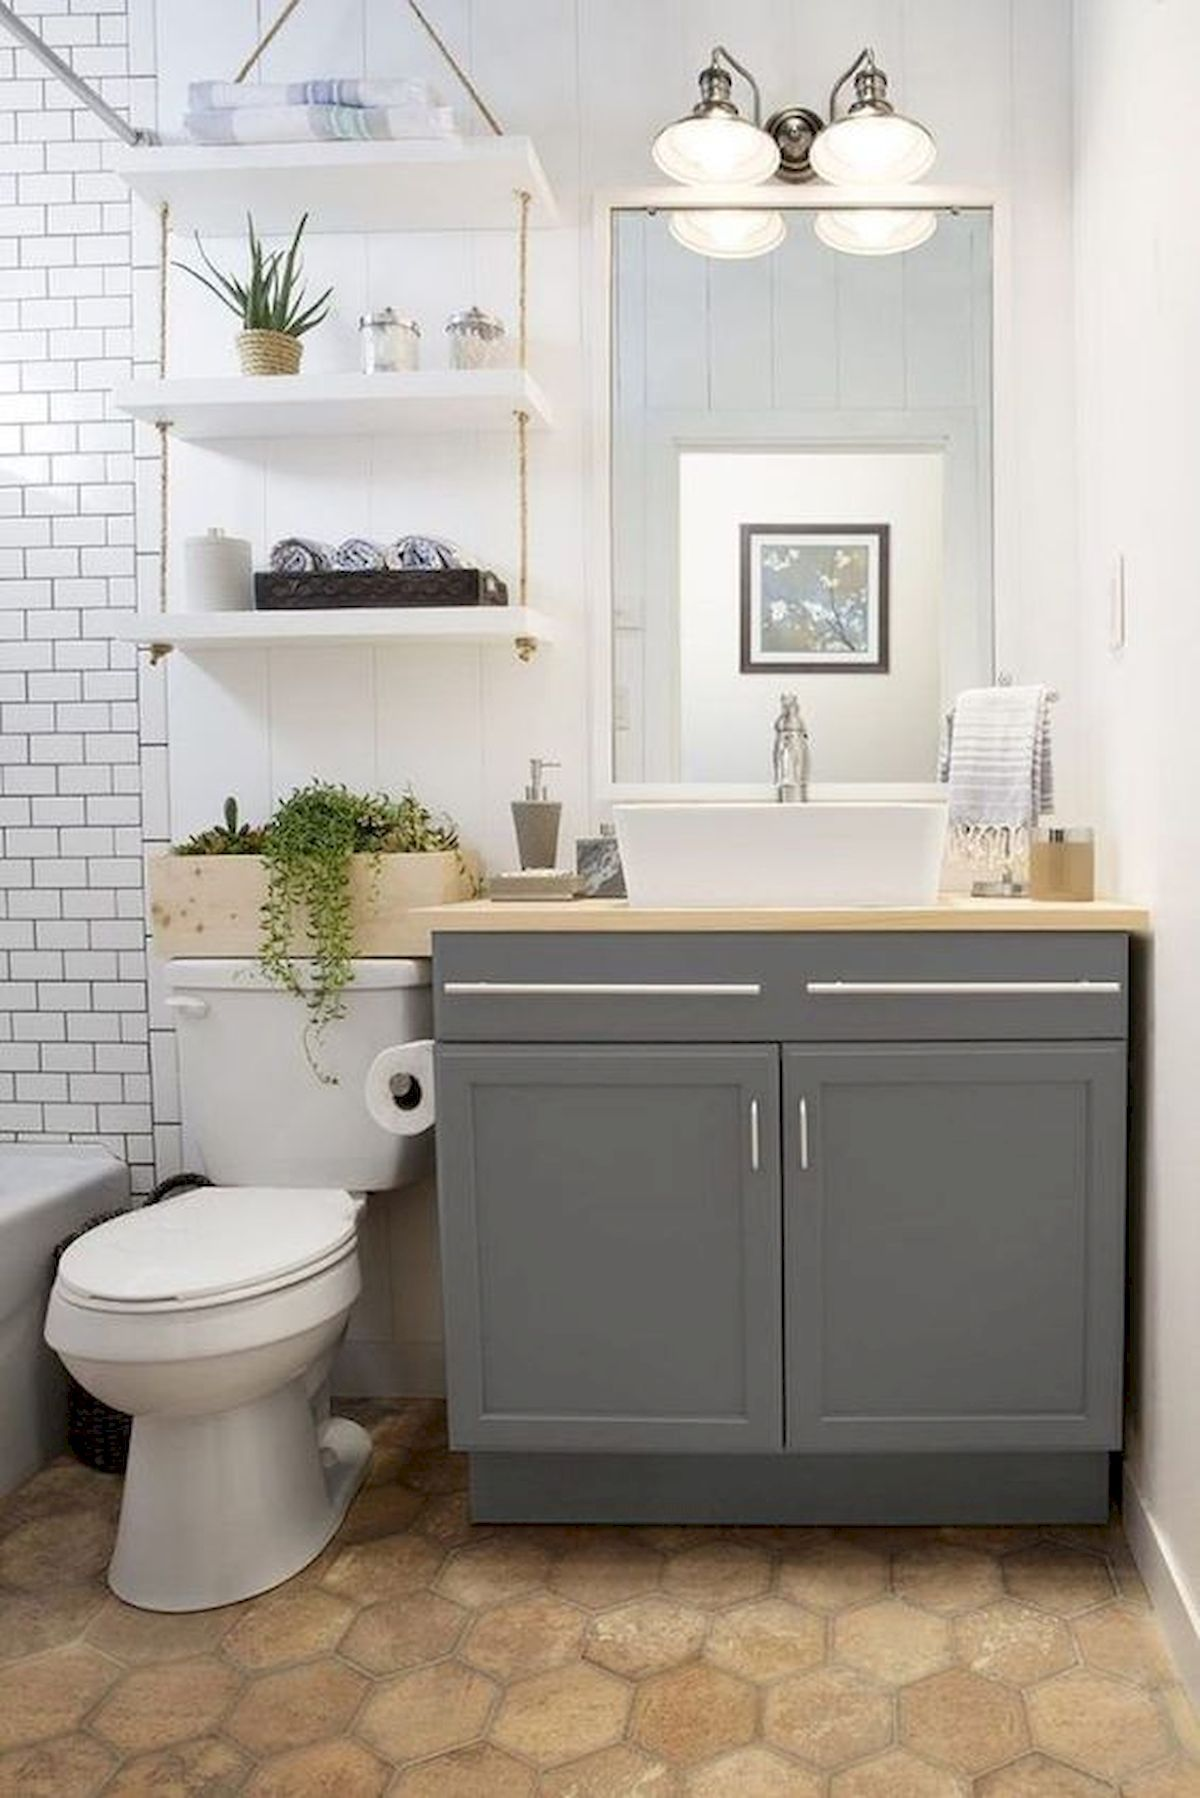 50 Best Storage Design Ideas For Small Bathroom With Images